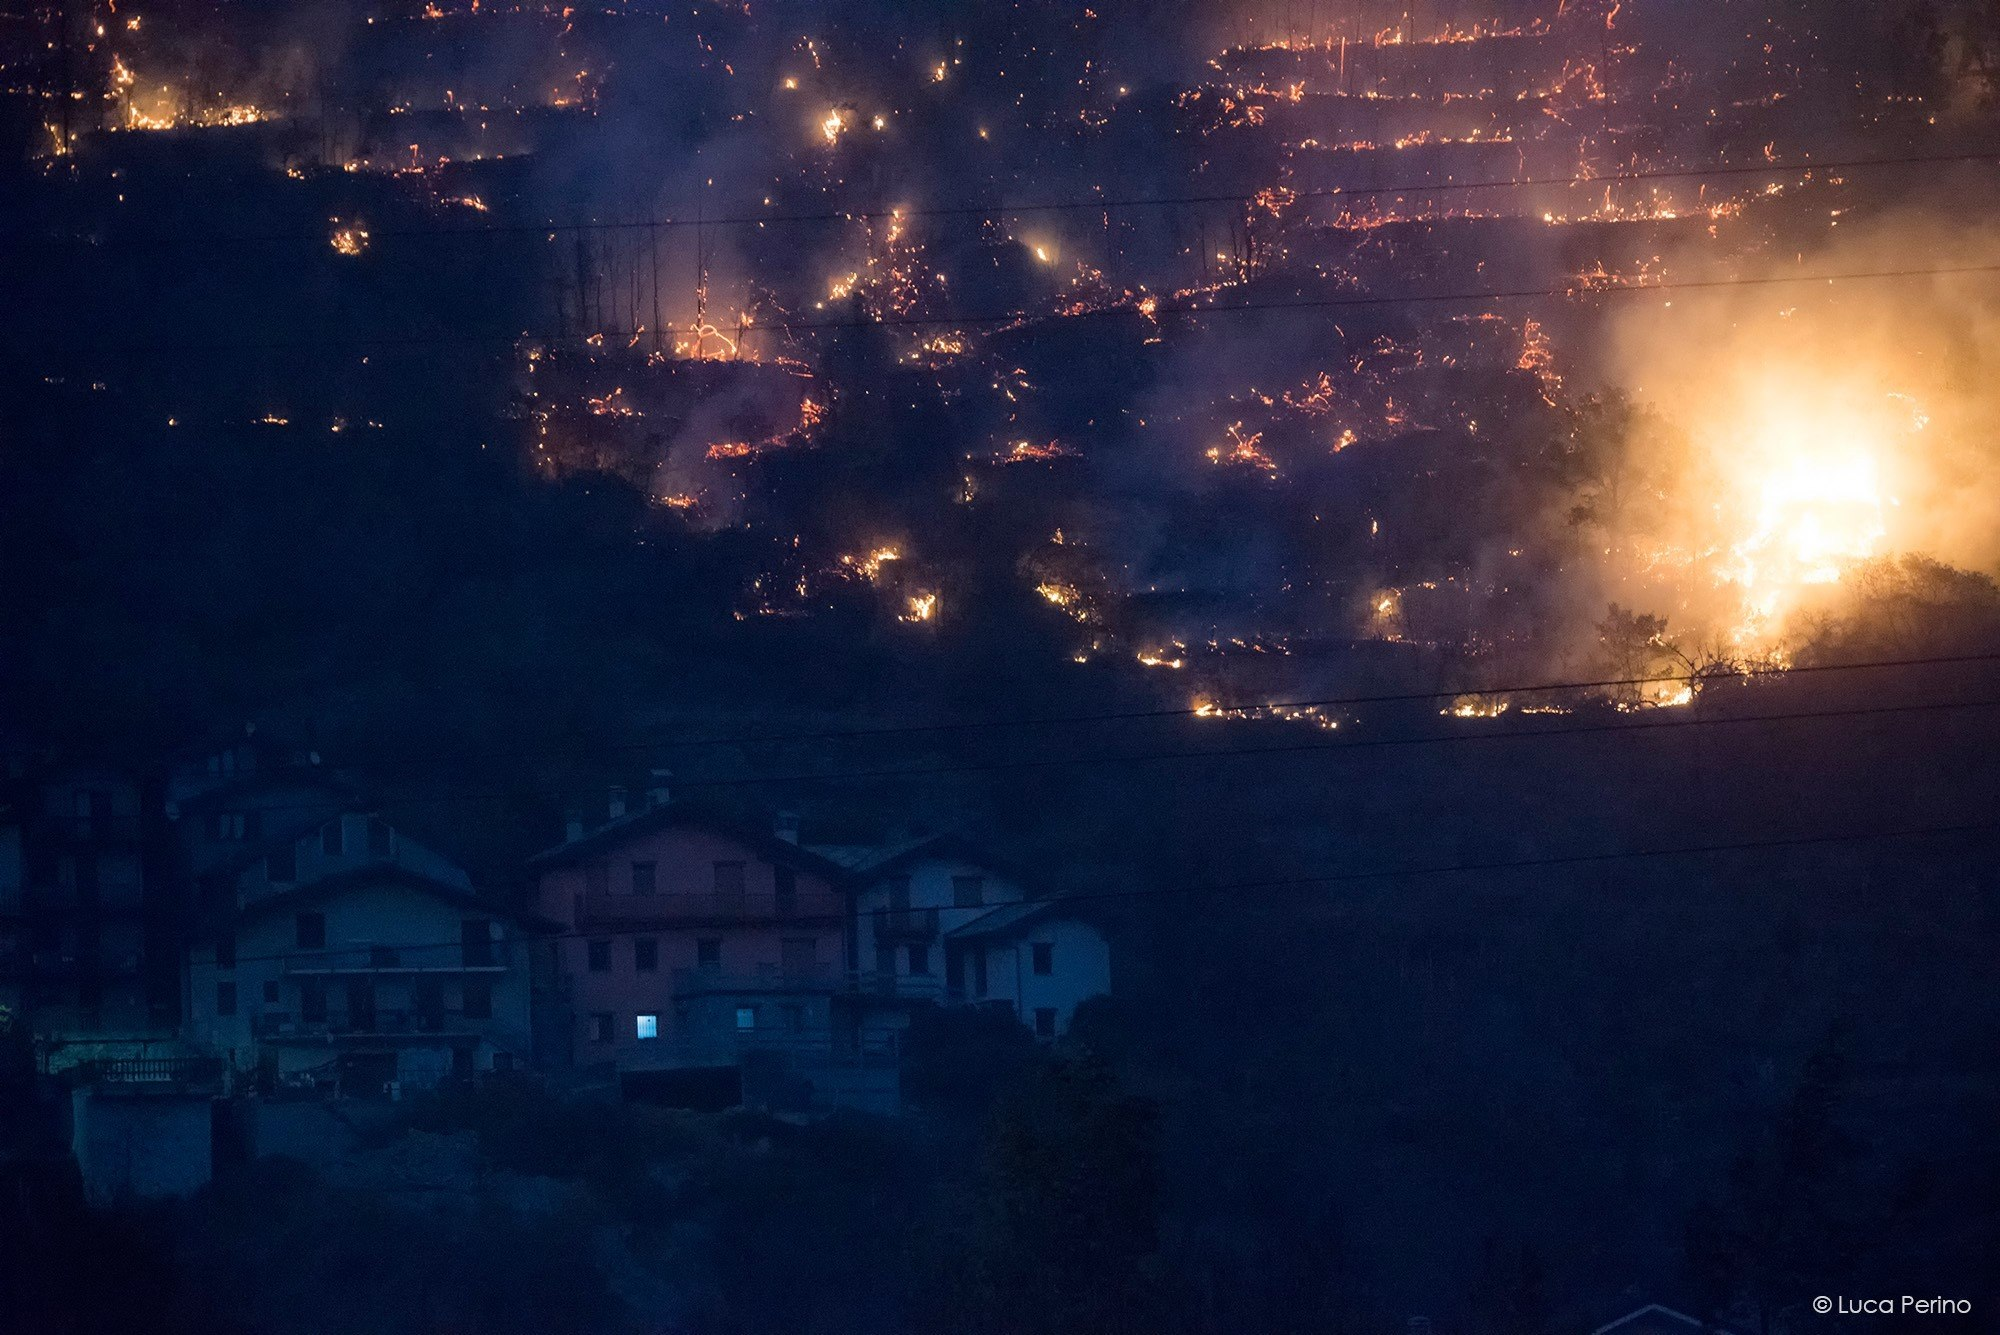 Italy forest fires, Forest fires are devastating Lombardy and Piedmont in Italy, Forest fires are devastating Lombardy and Piedmont in Italy pictures, Forest fires are devastating Lombardy and Piedmont in Italy videos